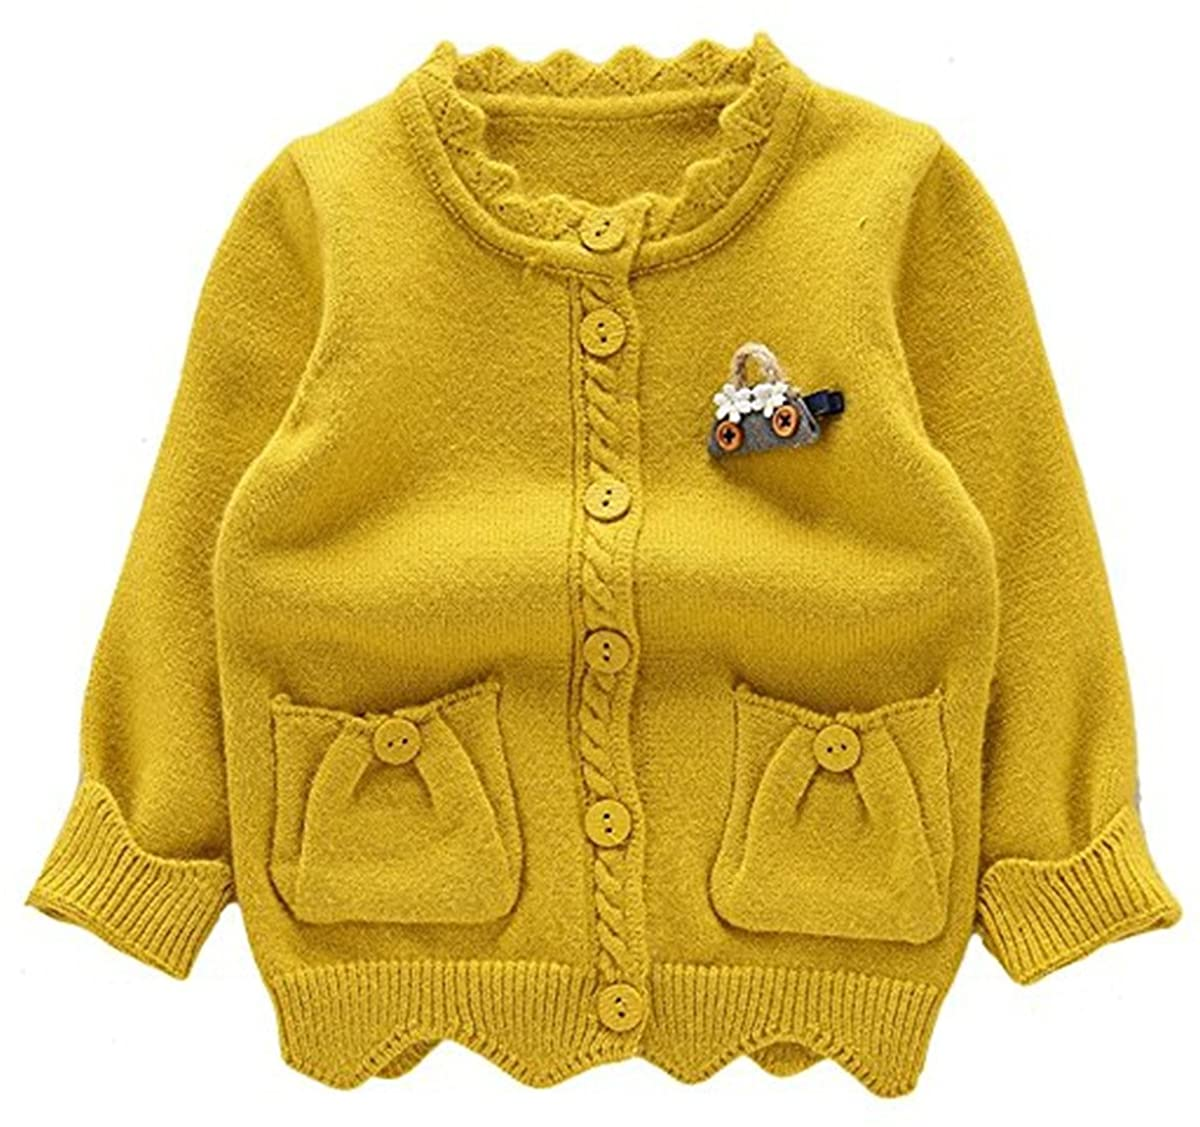 REWANGOING Baby Little Girls Kid sCashmere Cable Knit Front Button Cardigan Sweater